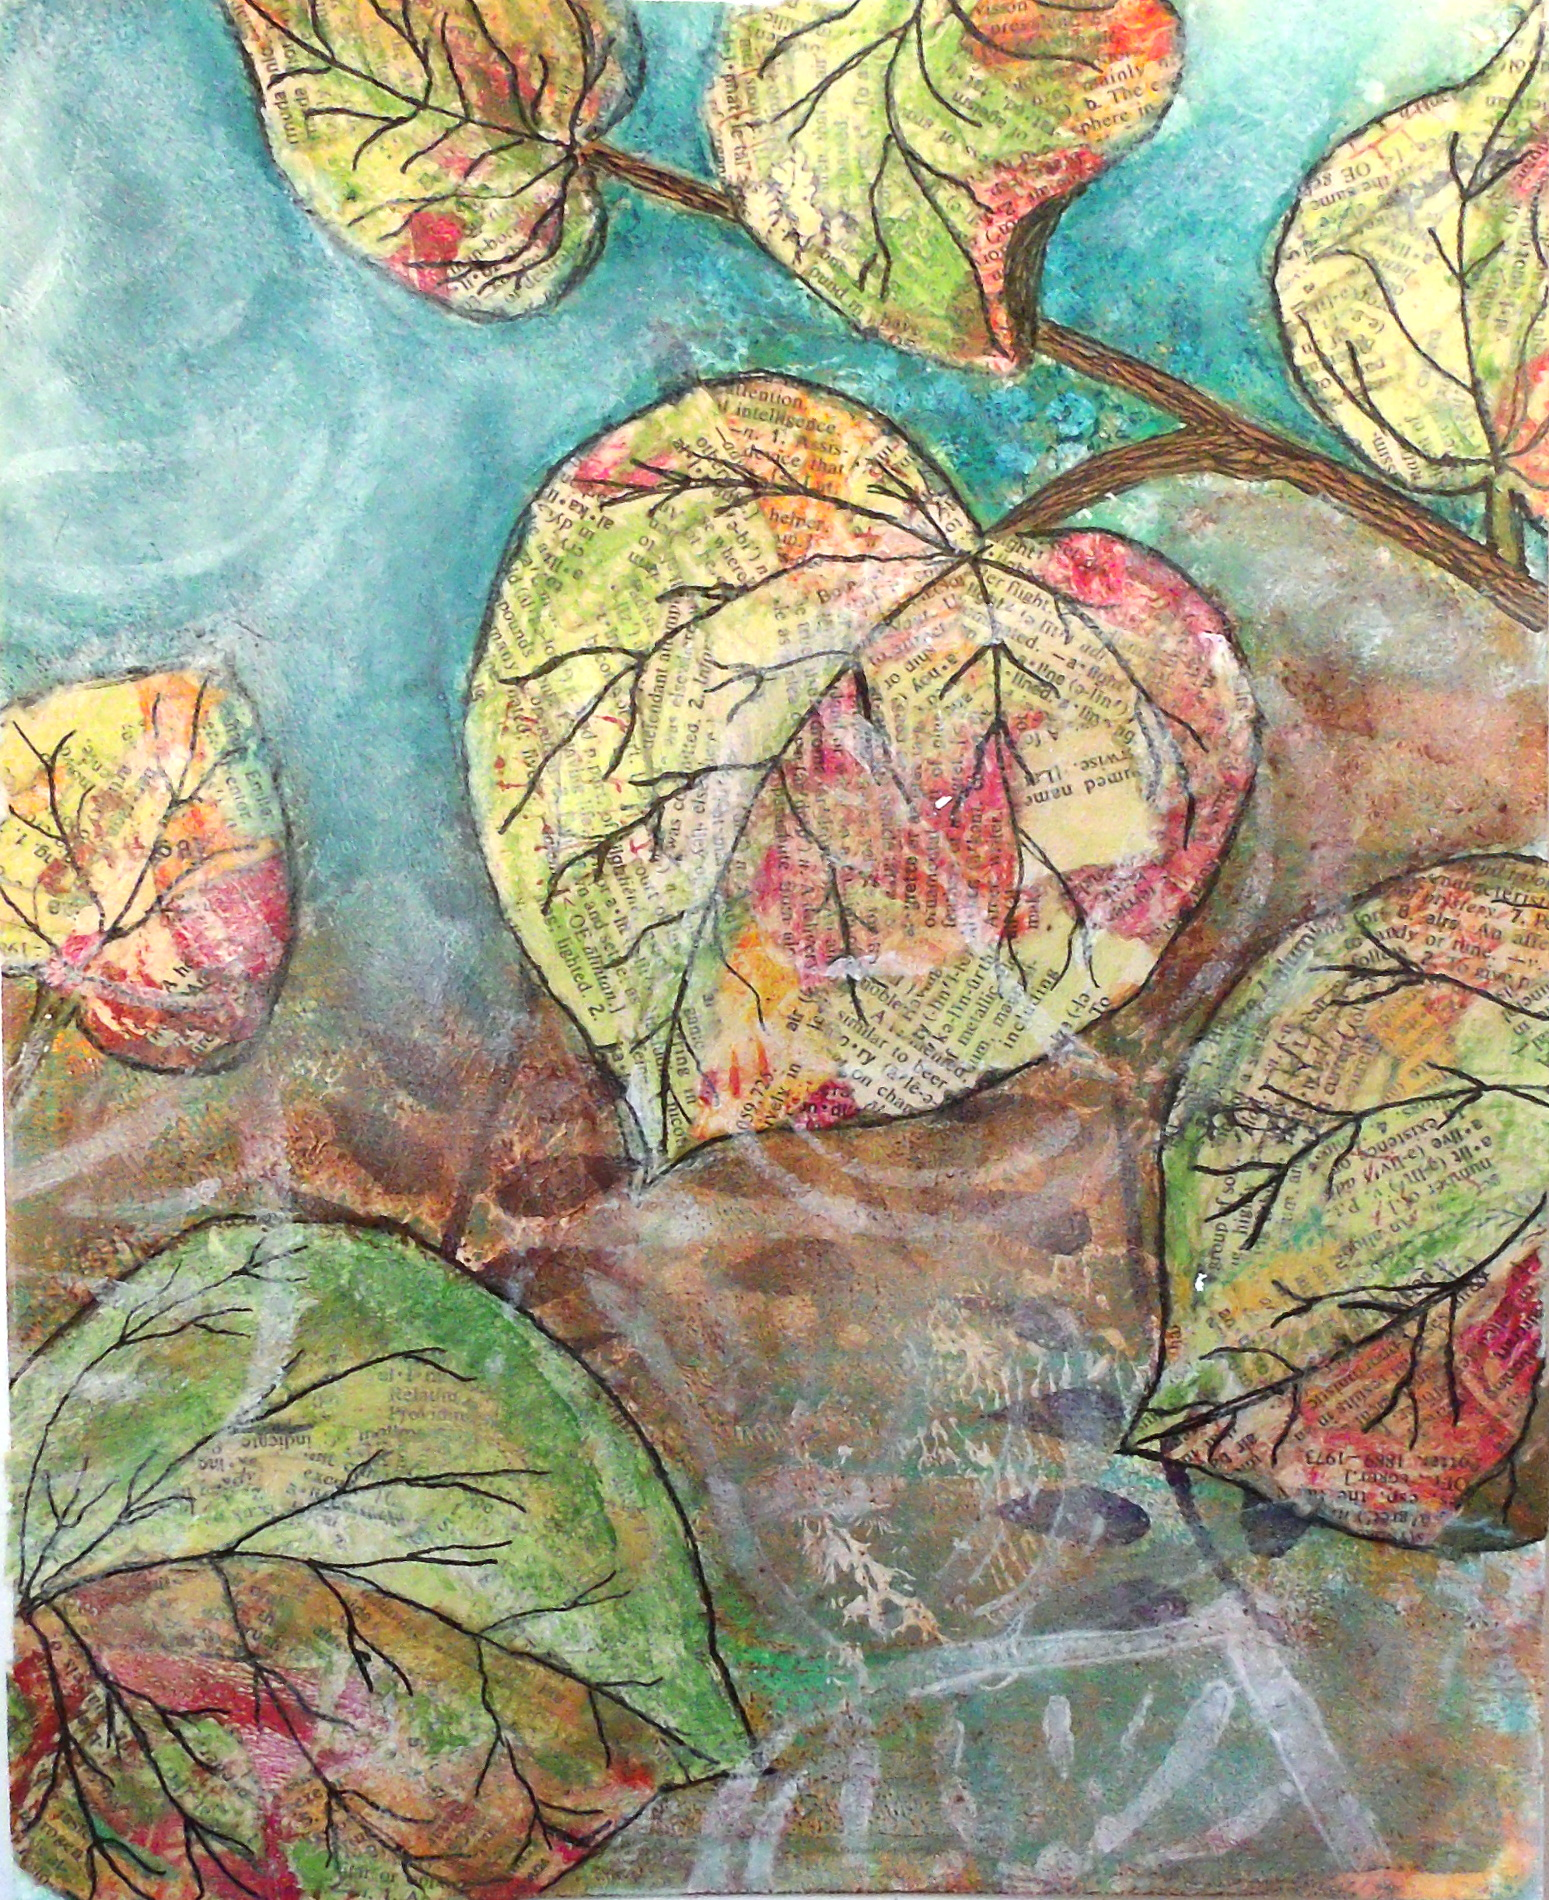 Torn paper collage - redbud leaves